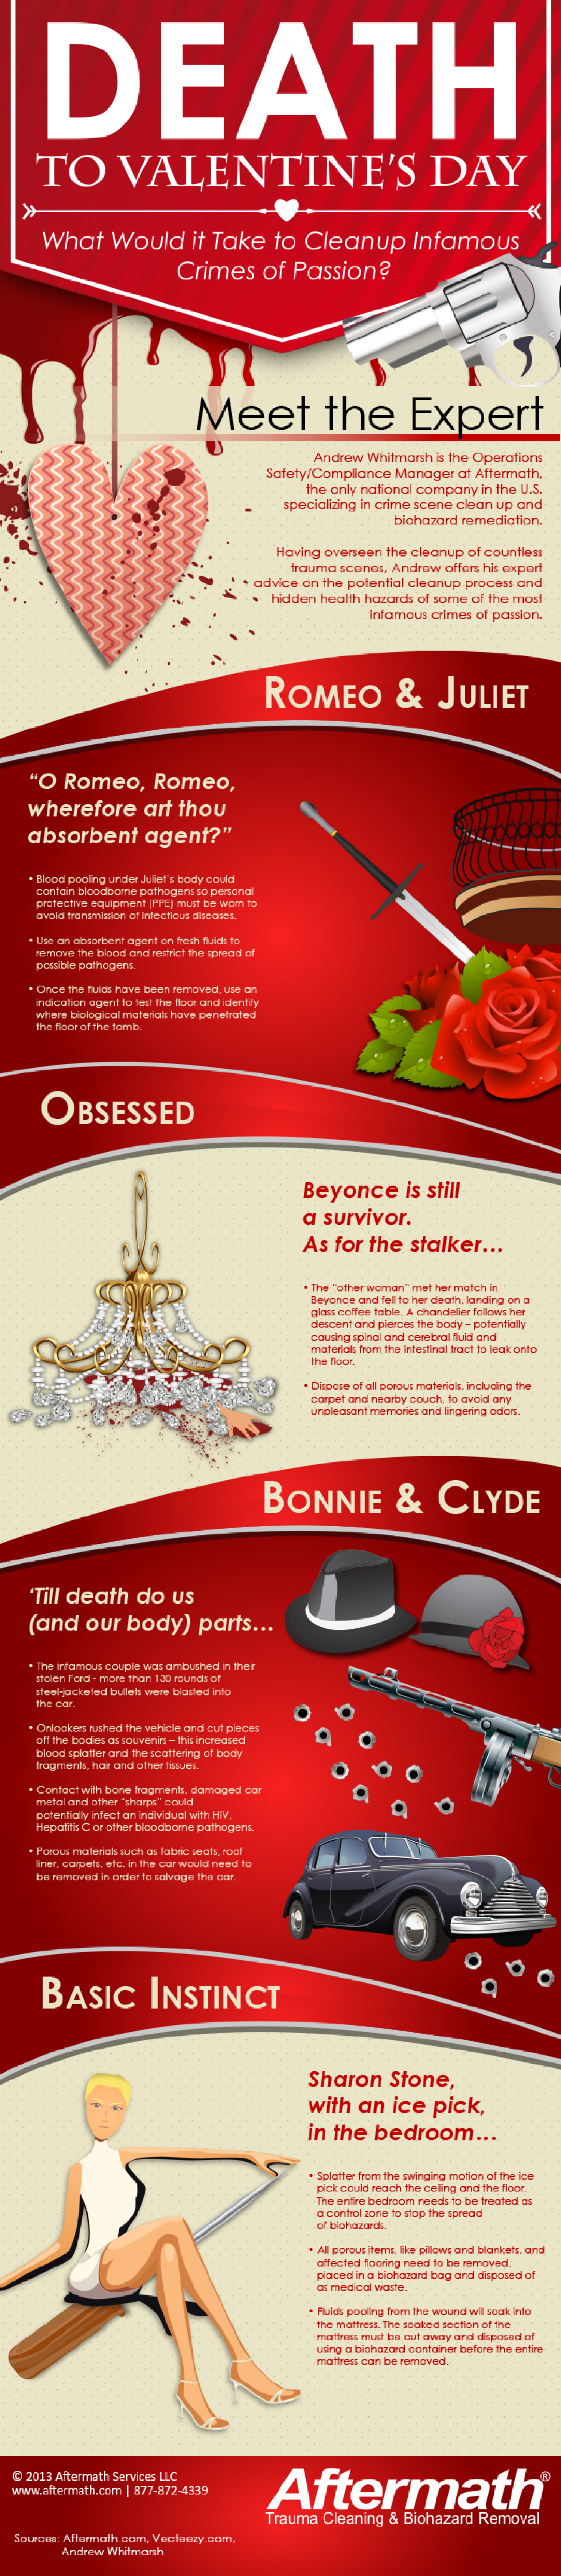 Death to Valentine's Day: What Would it Take to Cleanup Infamous Crimes of Passion?  Infographic